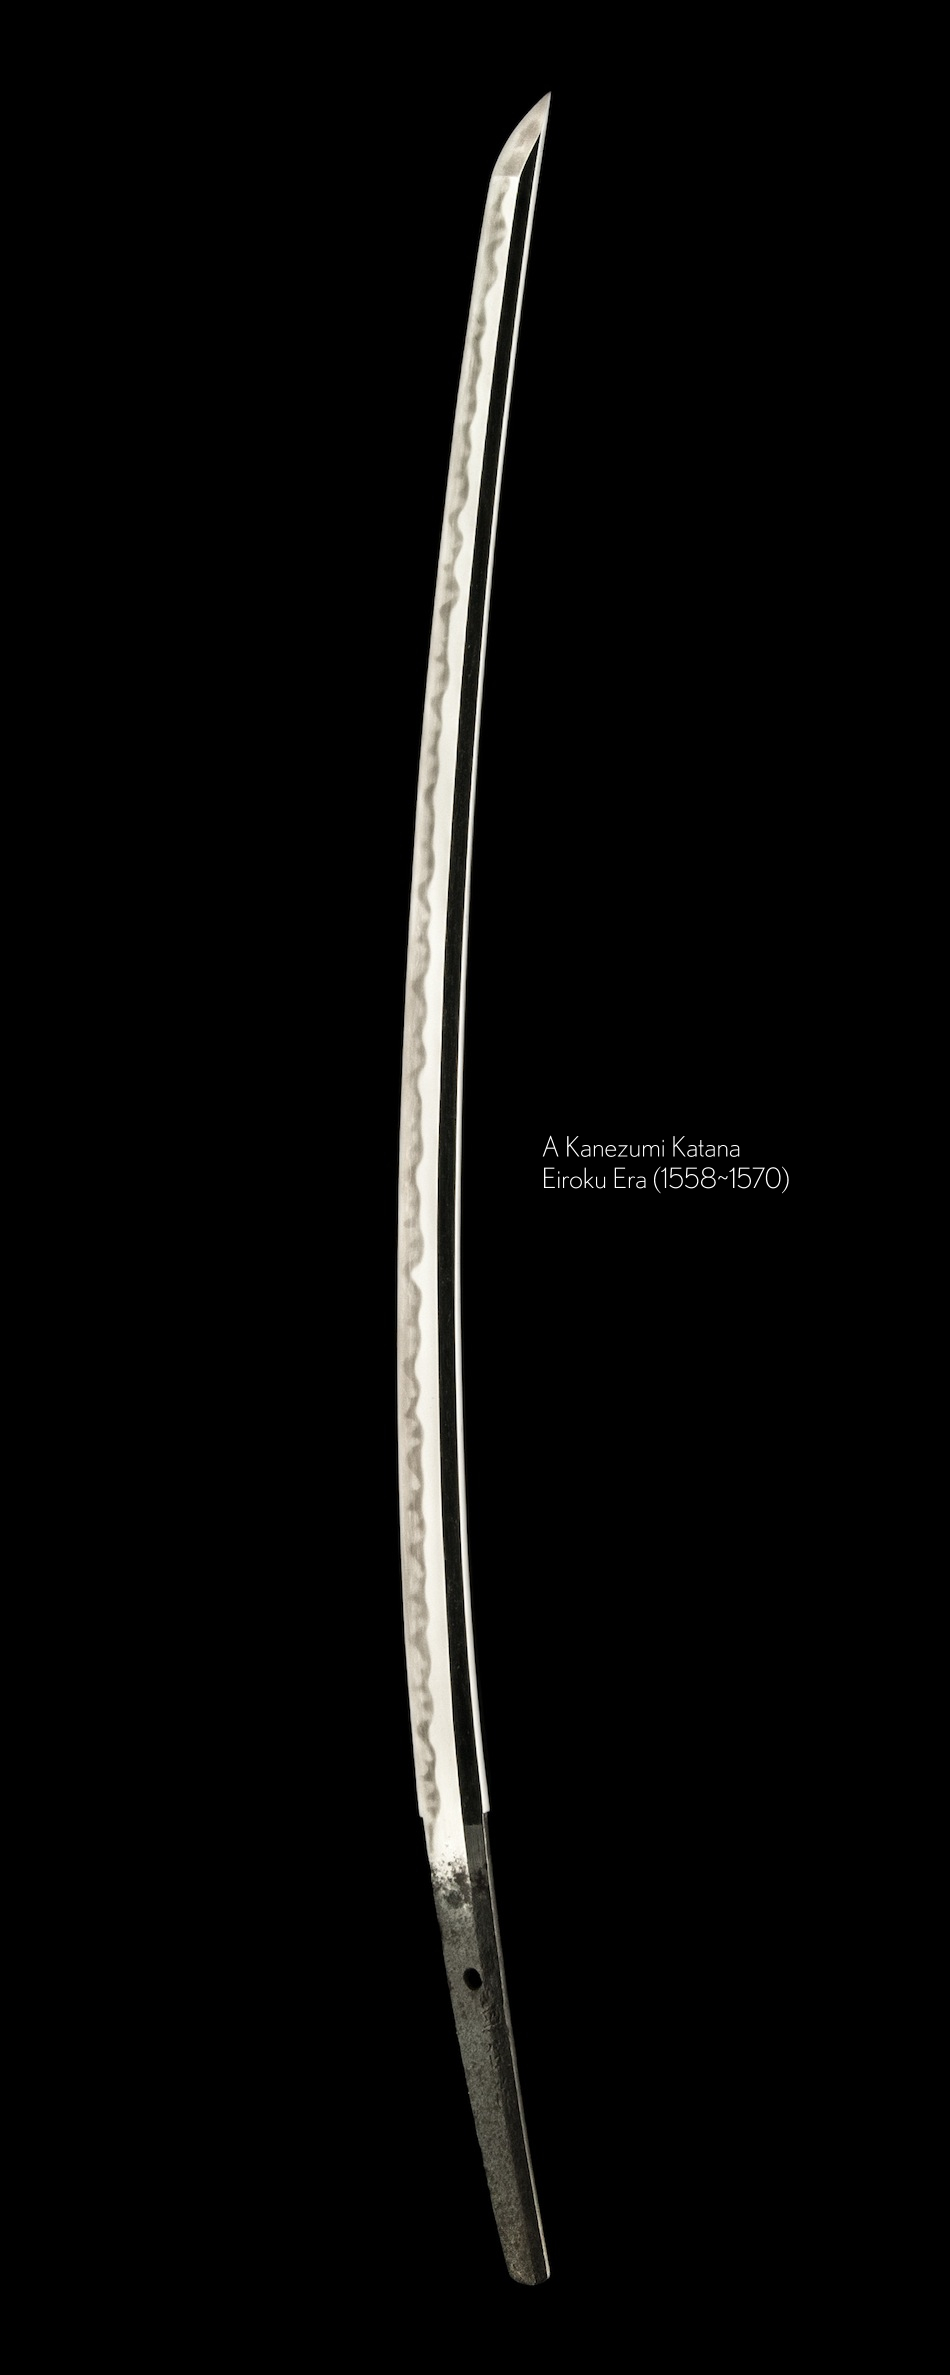 A Kanezumi Katana from the Eiroku Era